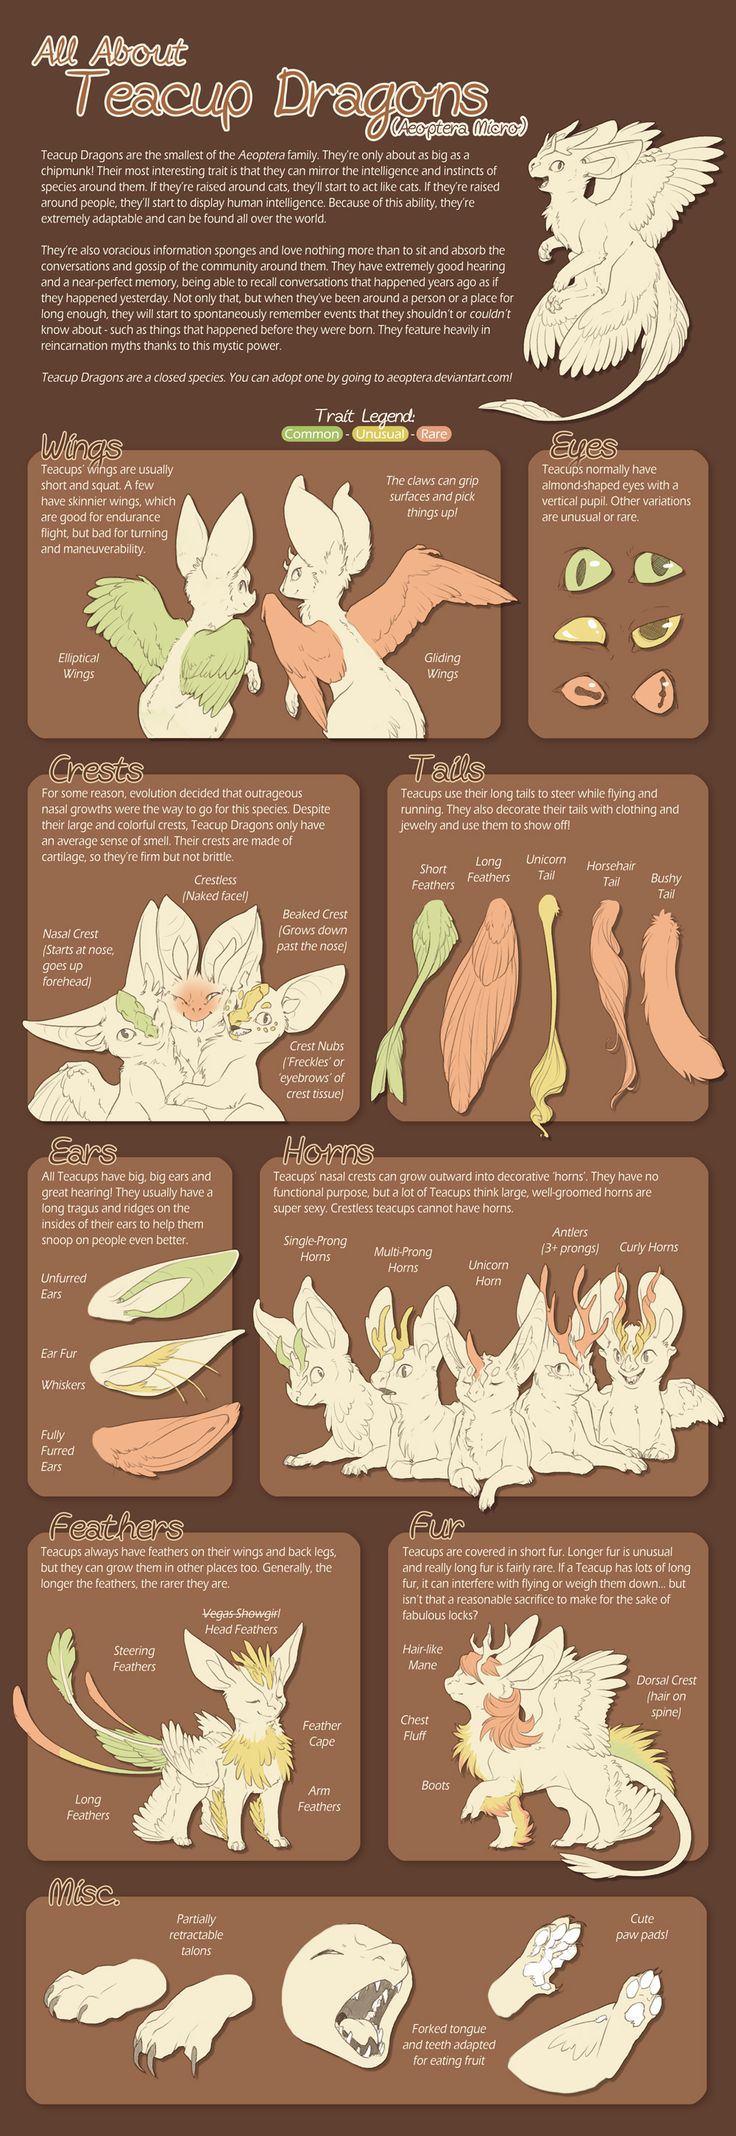 Teacup Dragon Species Sheet v.2 by Aeoptera.deviantart.com on @DeviantArt